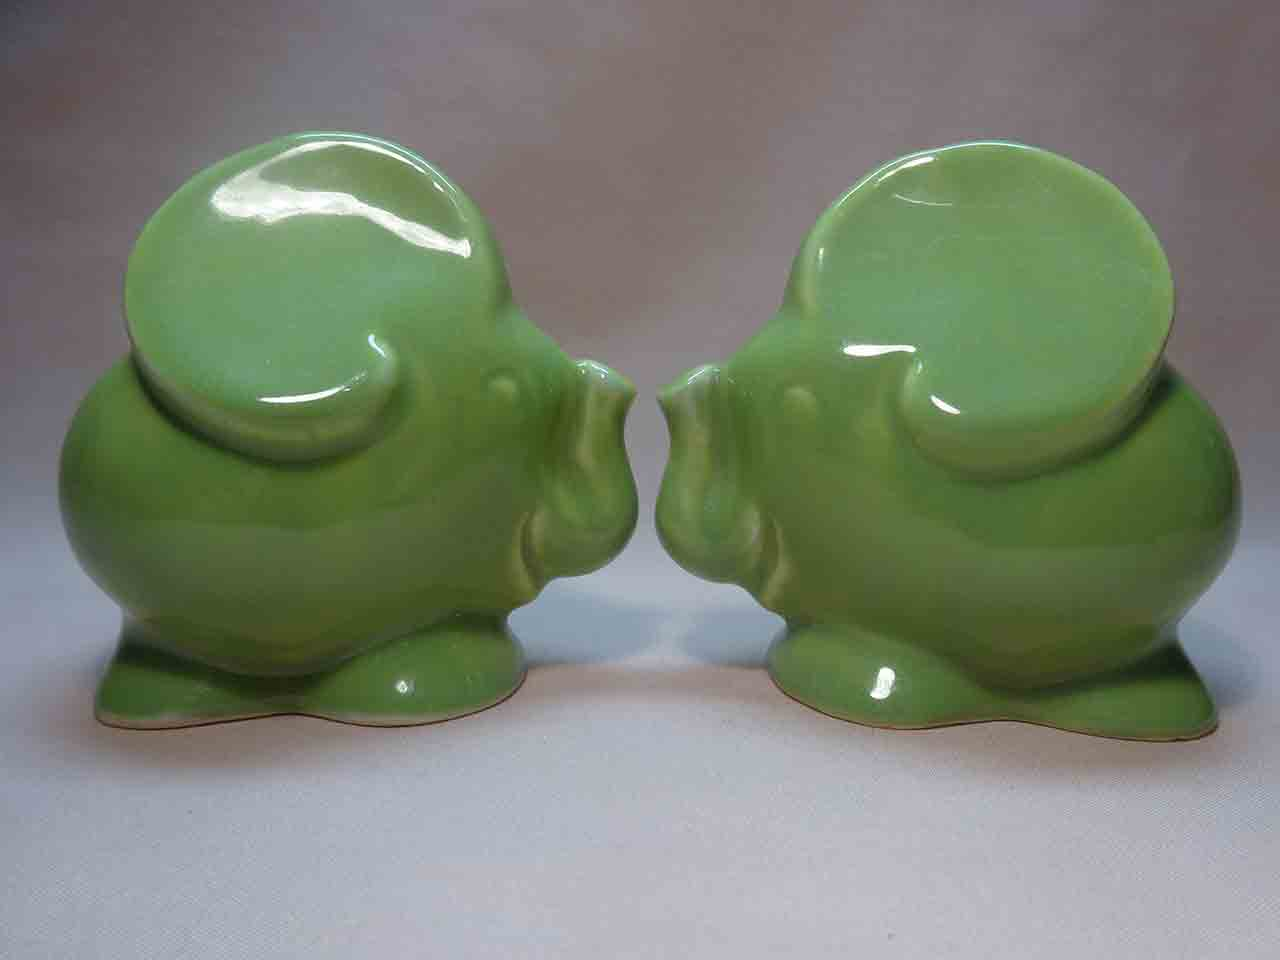 Pacific Pottery salt and pepper shakers - elephants